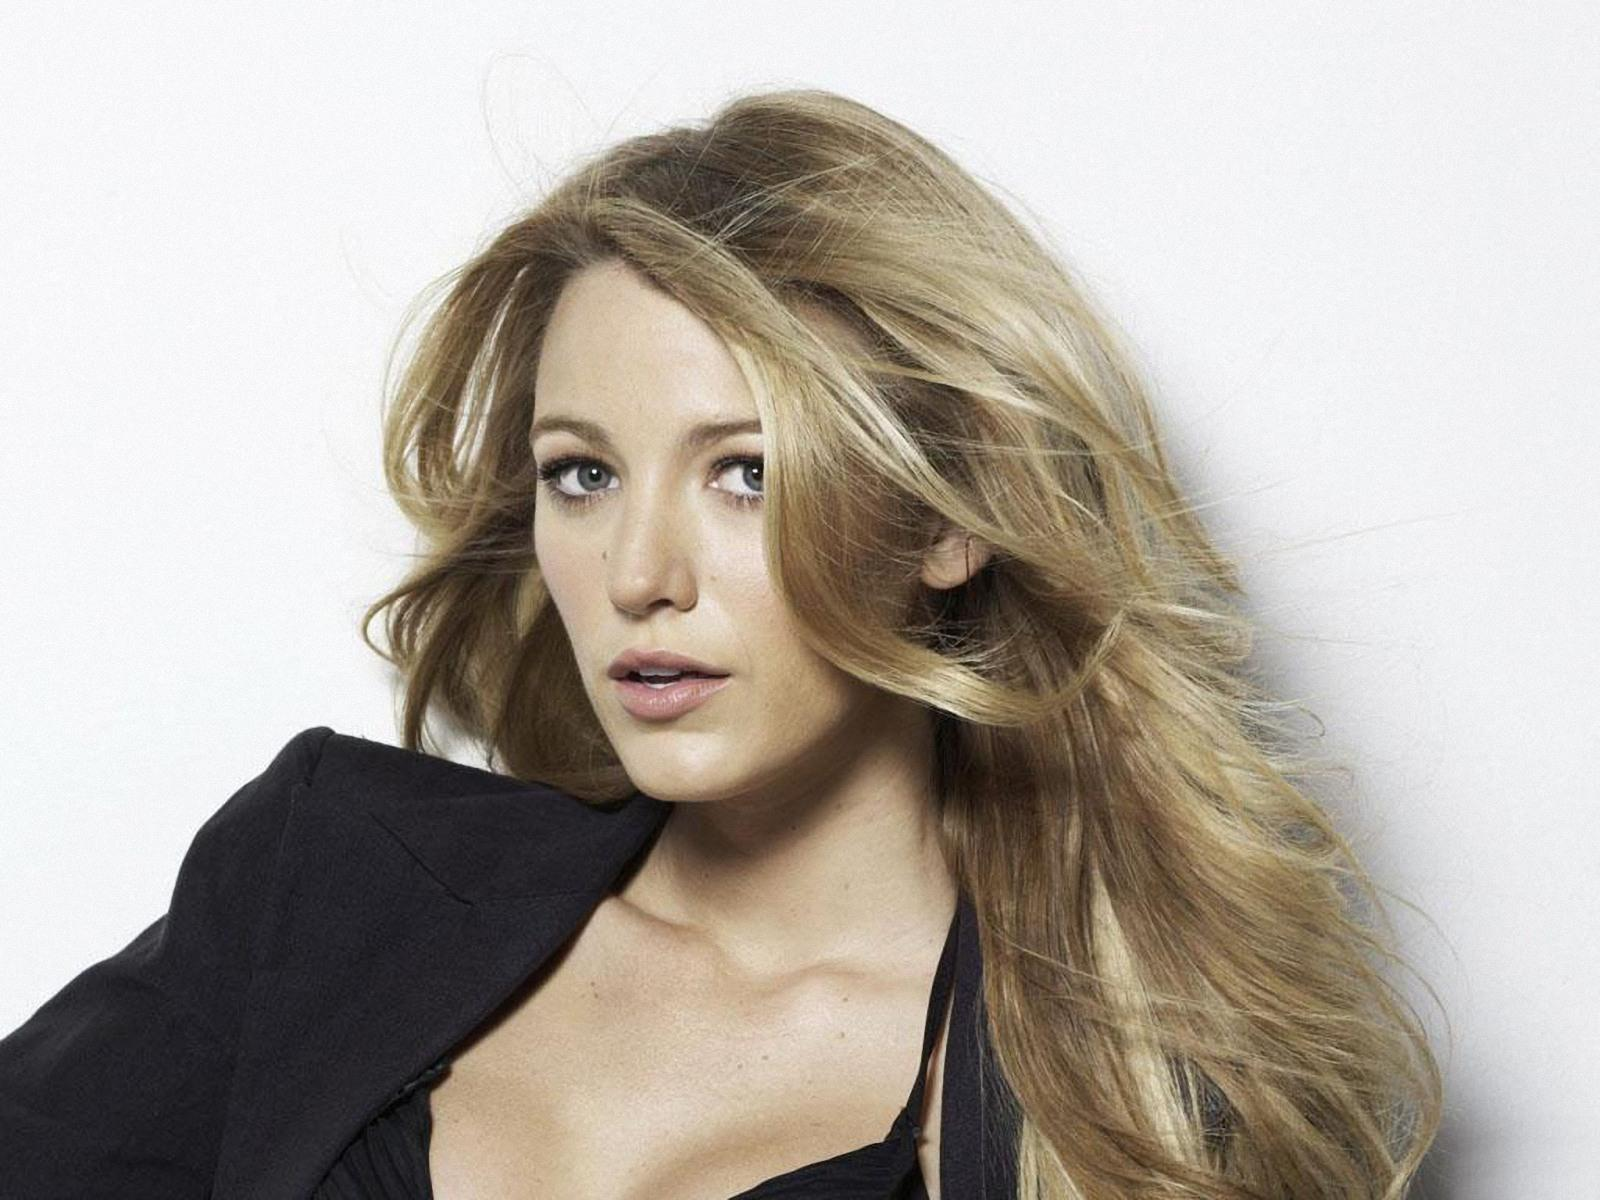 blake lively close-up 6 wallpapers | blake lively close-up 6 stock